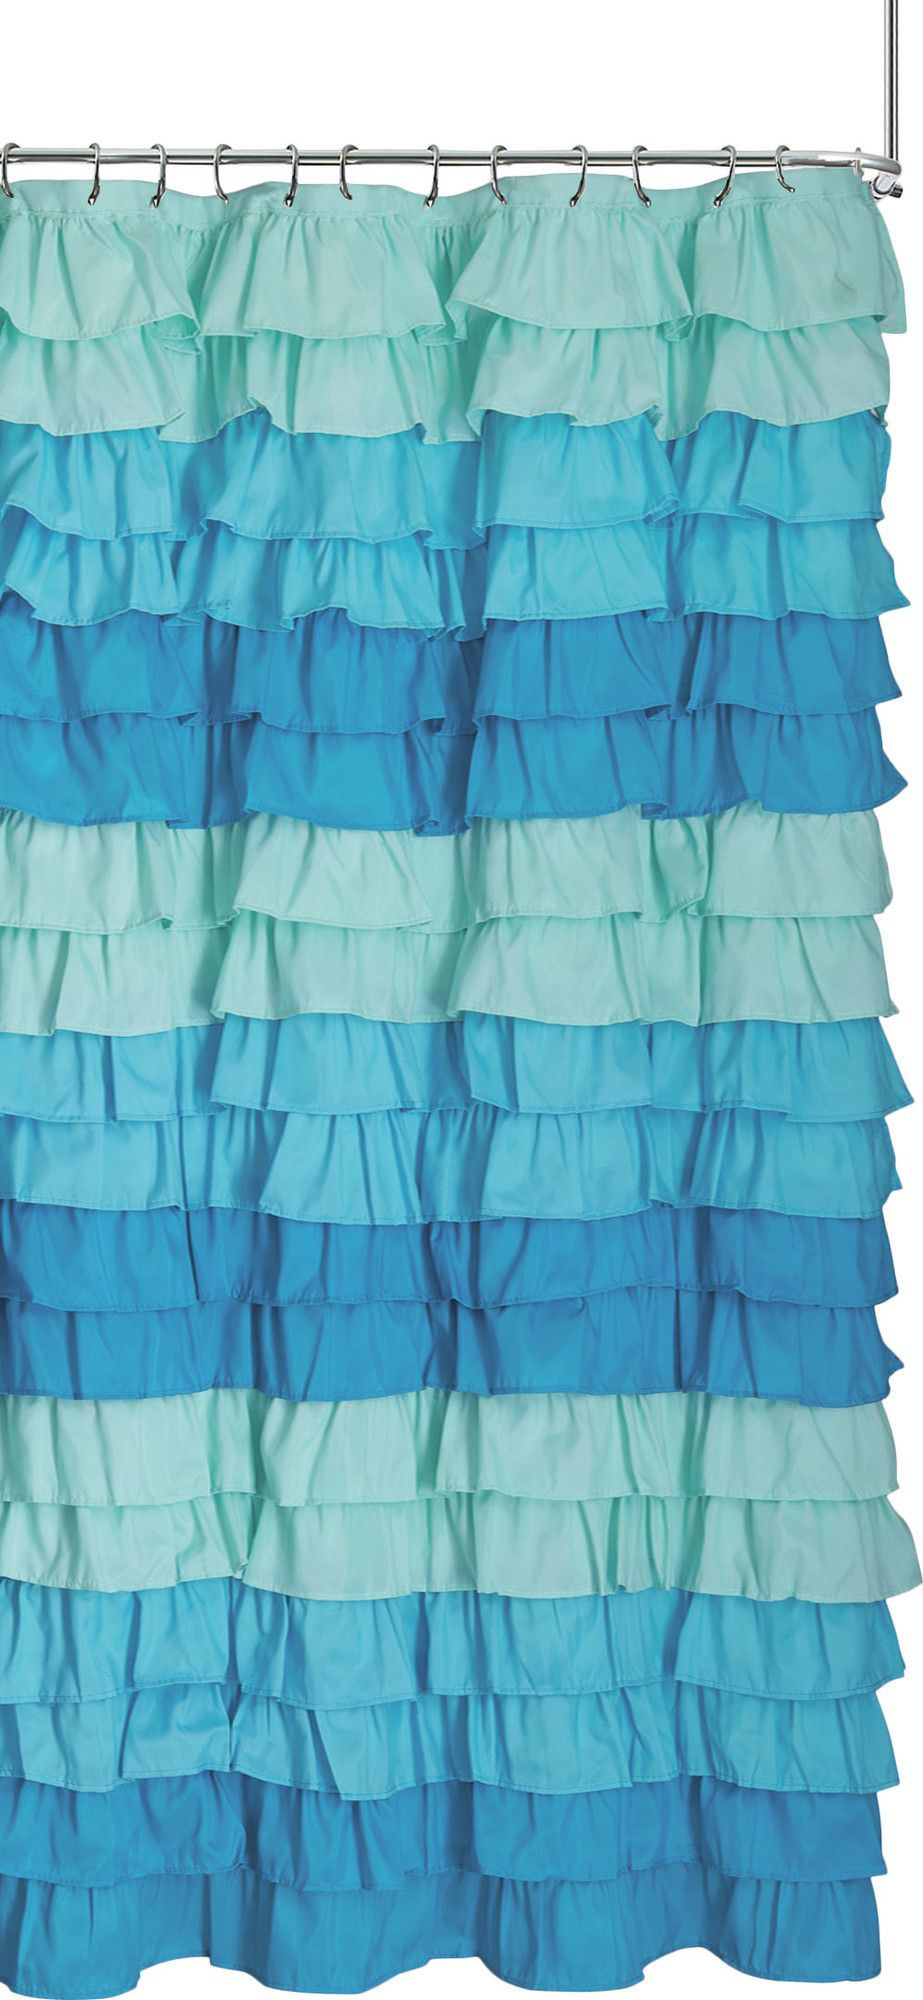 Venezia Ruffle Shower Curtain | Products | Pinterest | Ruffle shower ...